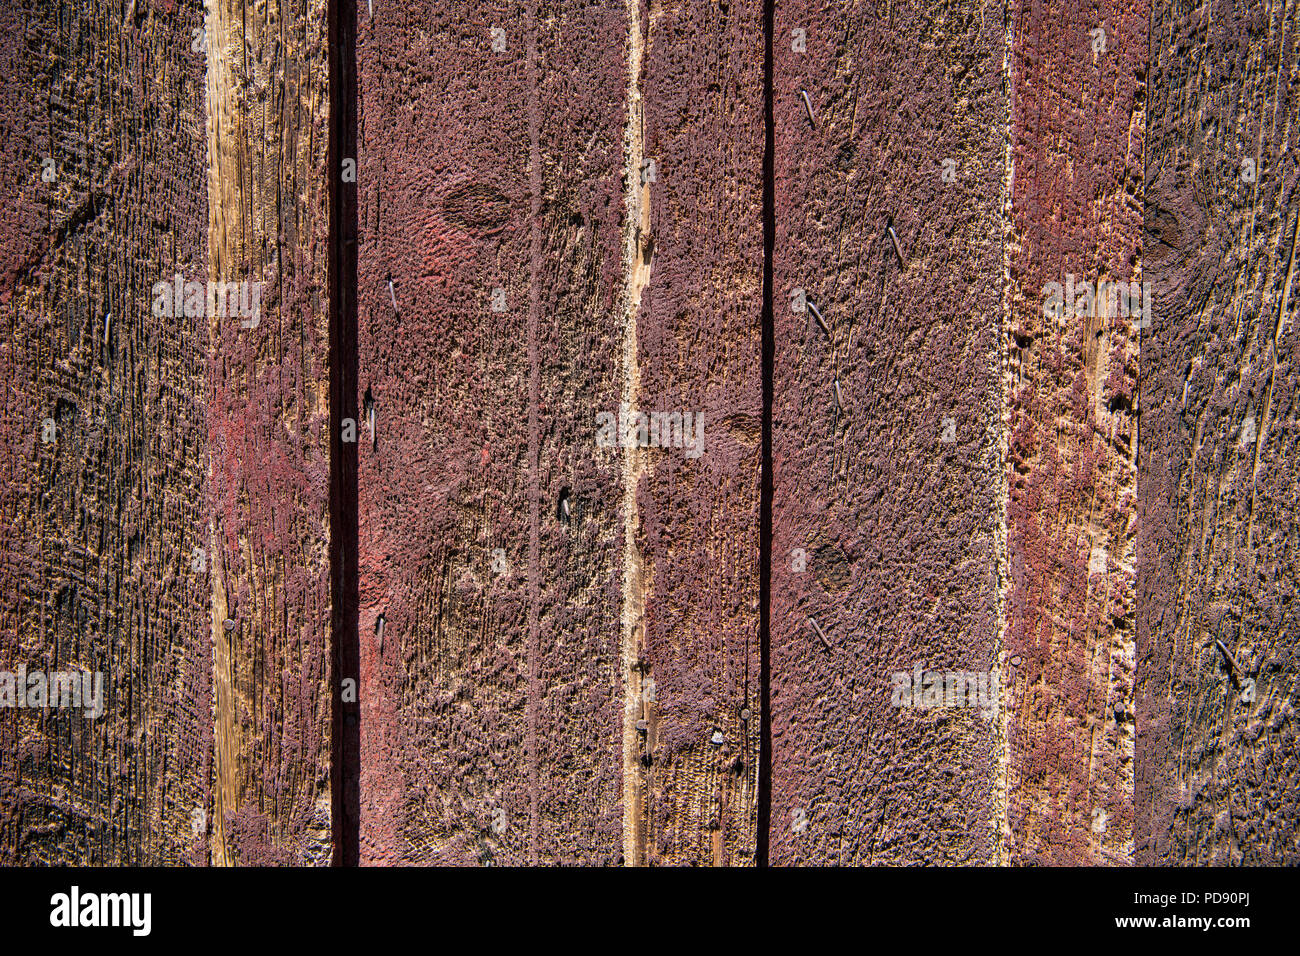 Rustic background texture of weathered rough cut wood boards with red and brown color tones - Stock Image